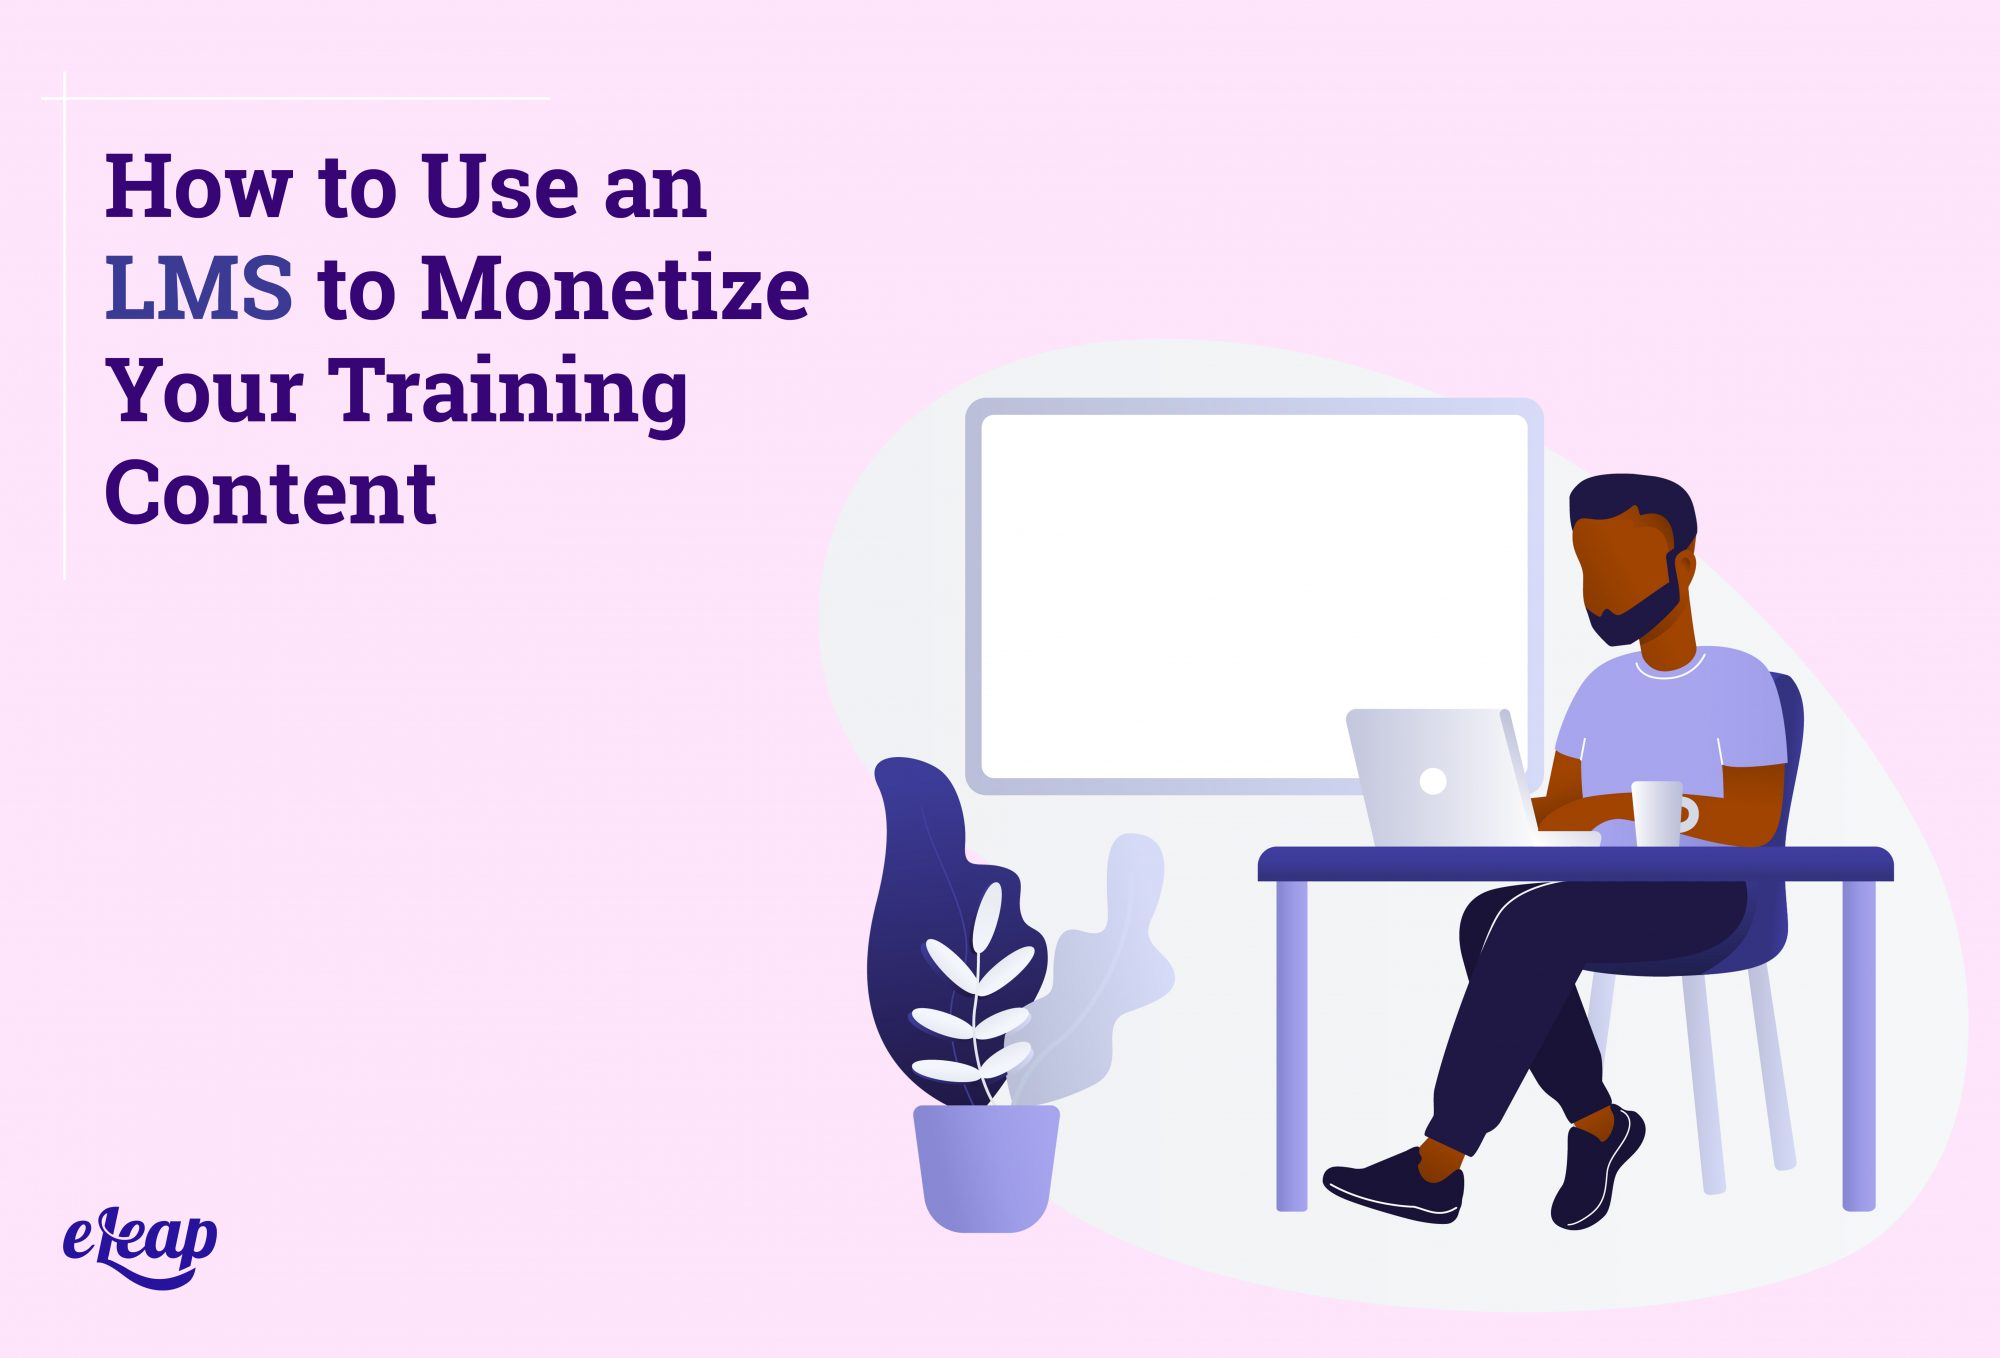 How to Use an LMS to Monetize Your Training Content